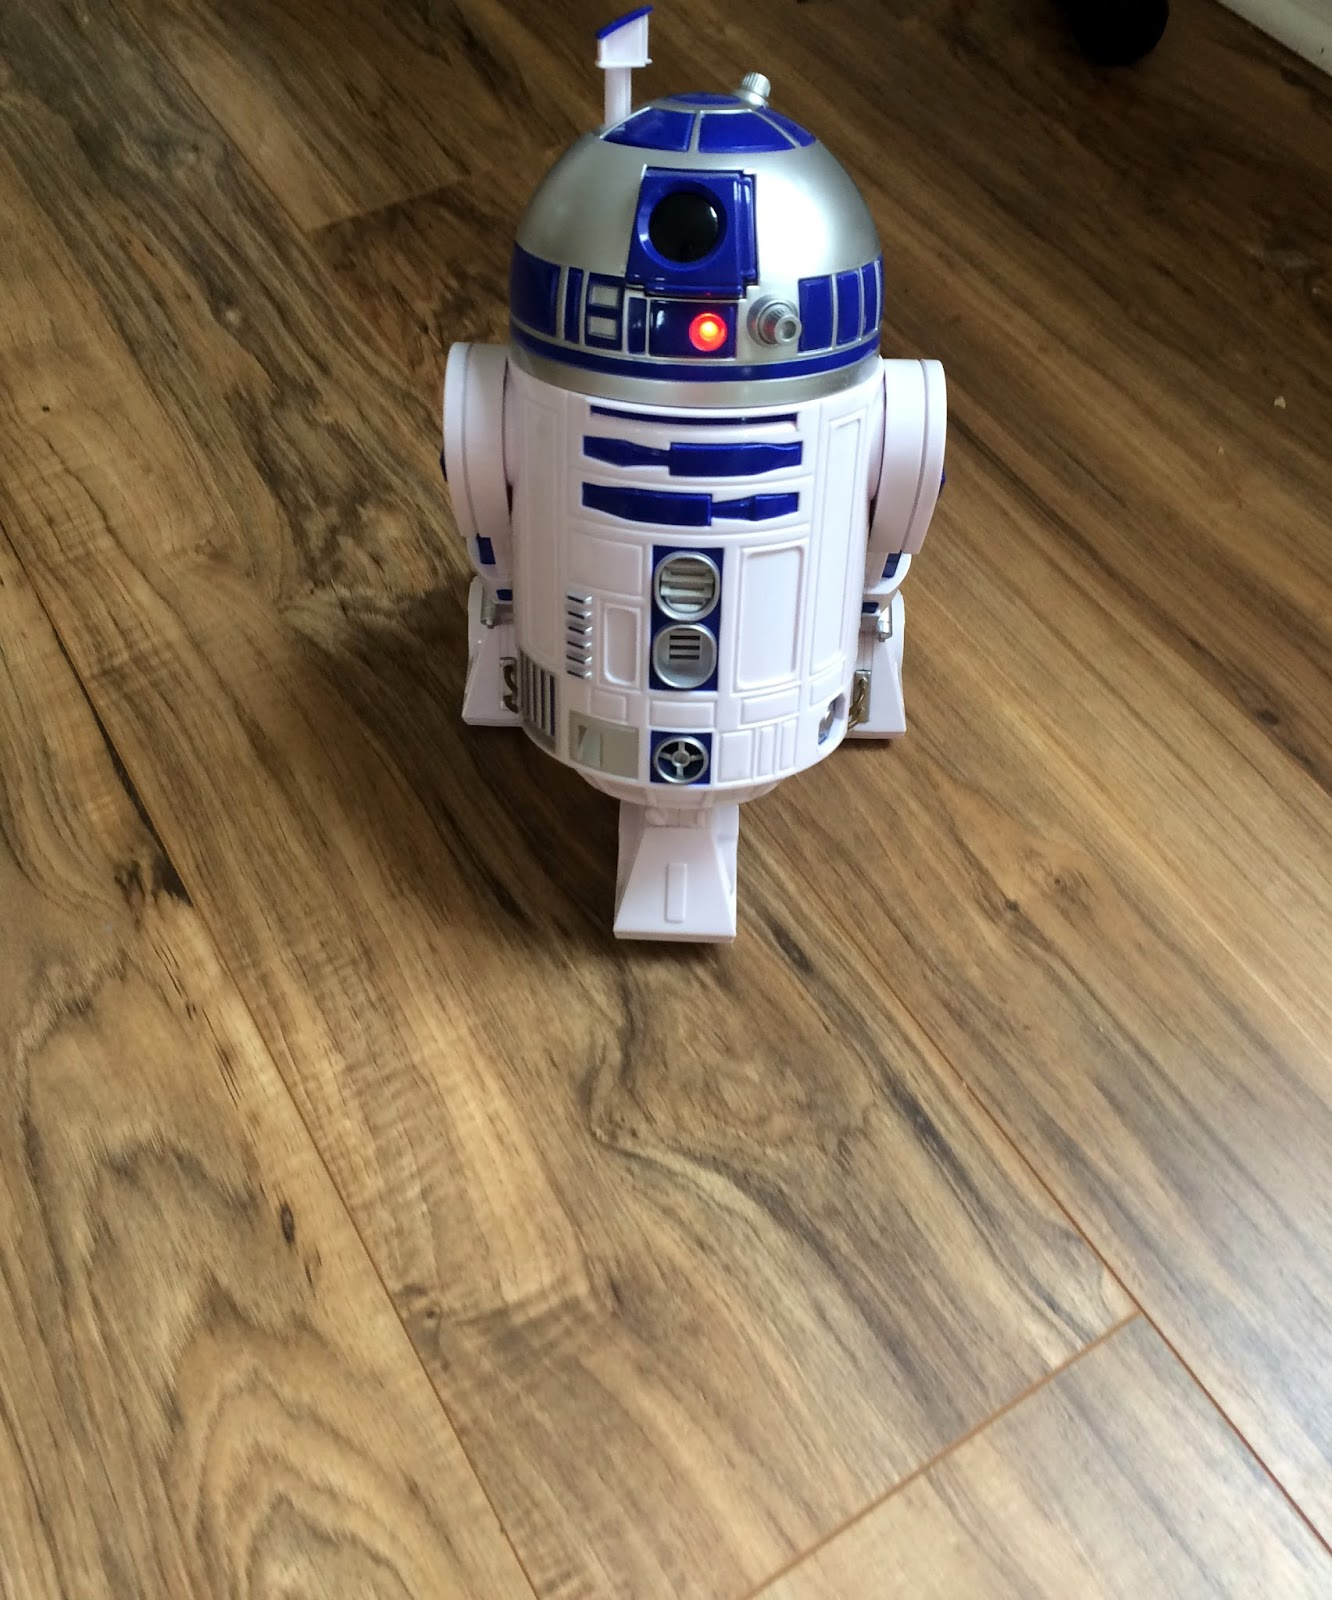 r2d2 talking walking robot star wars